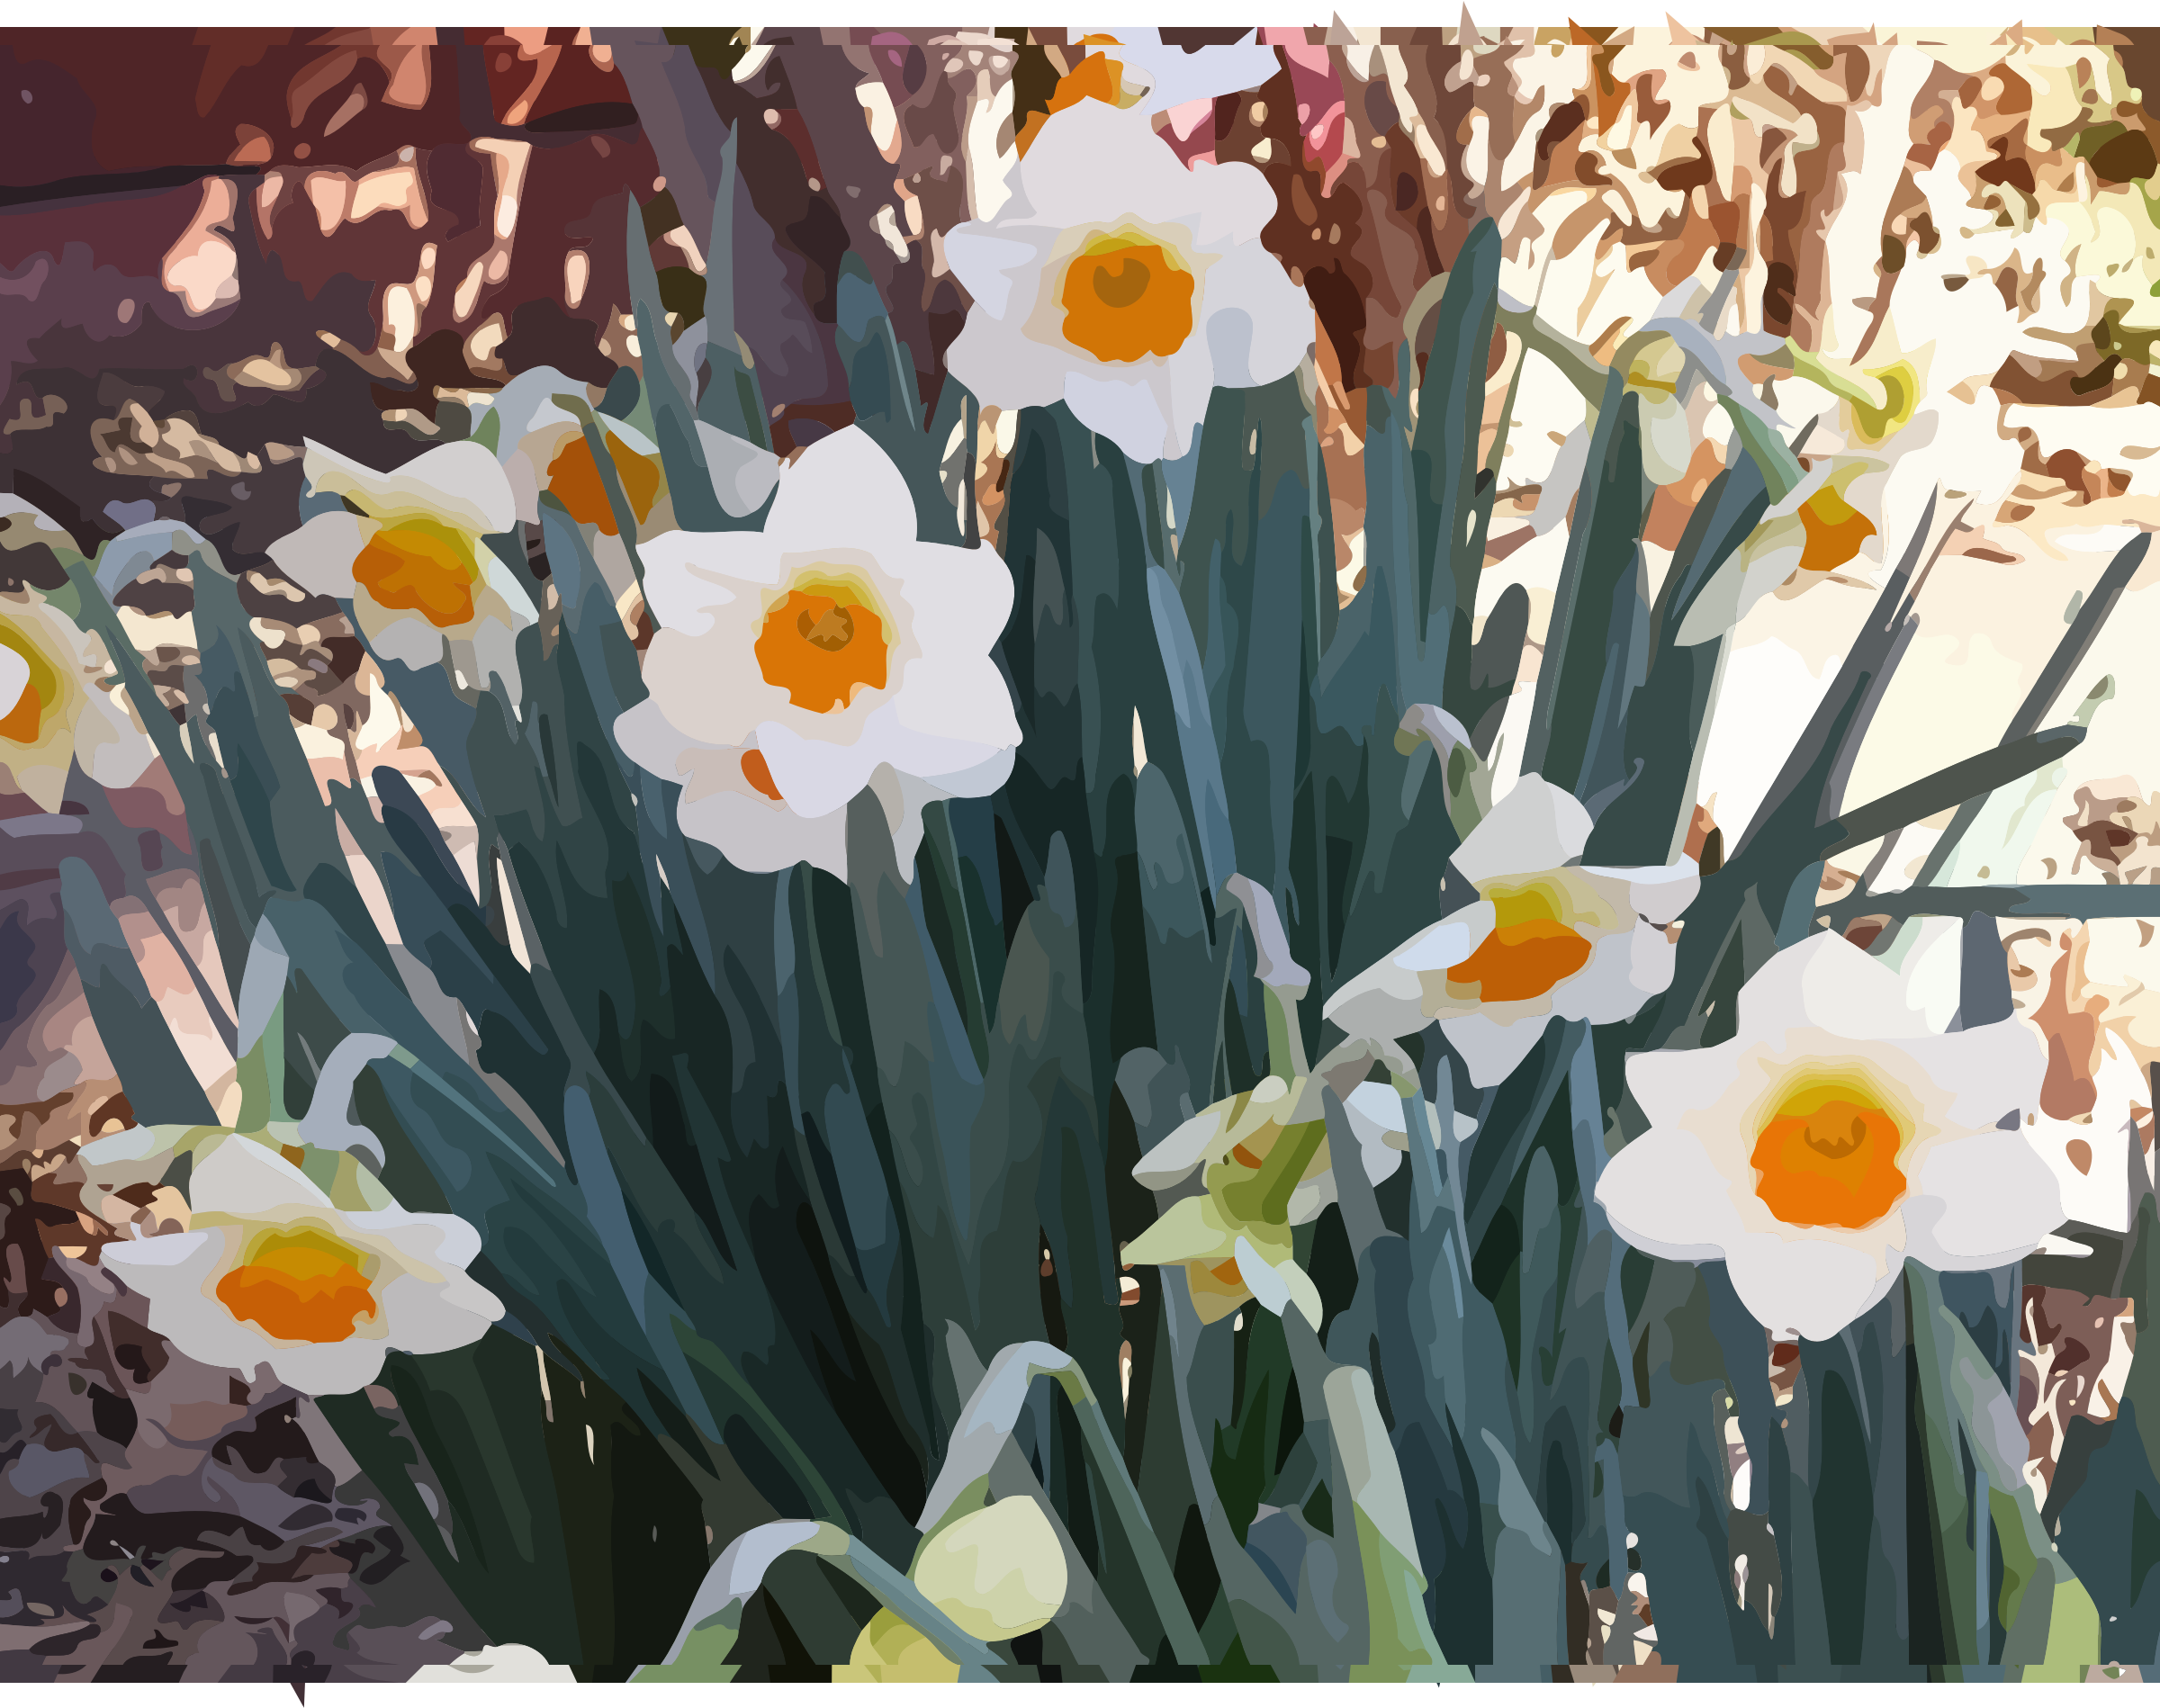 daffodils-10 by datteber